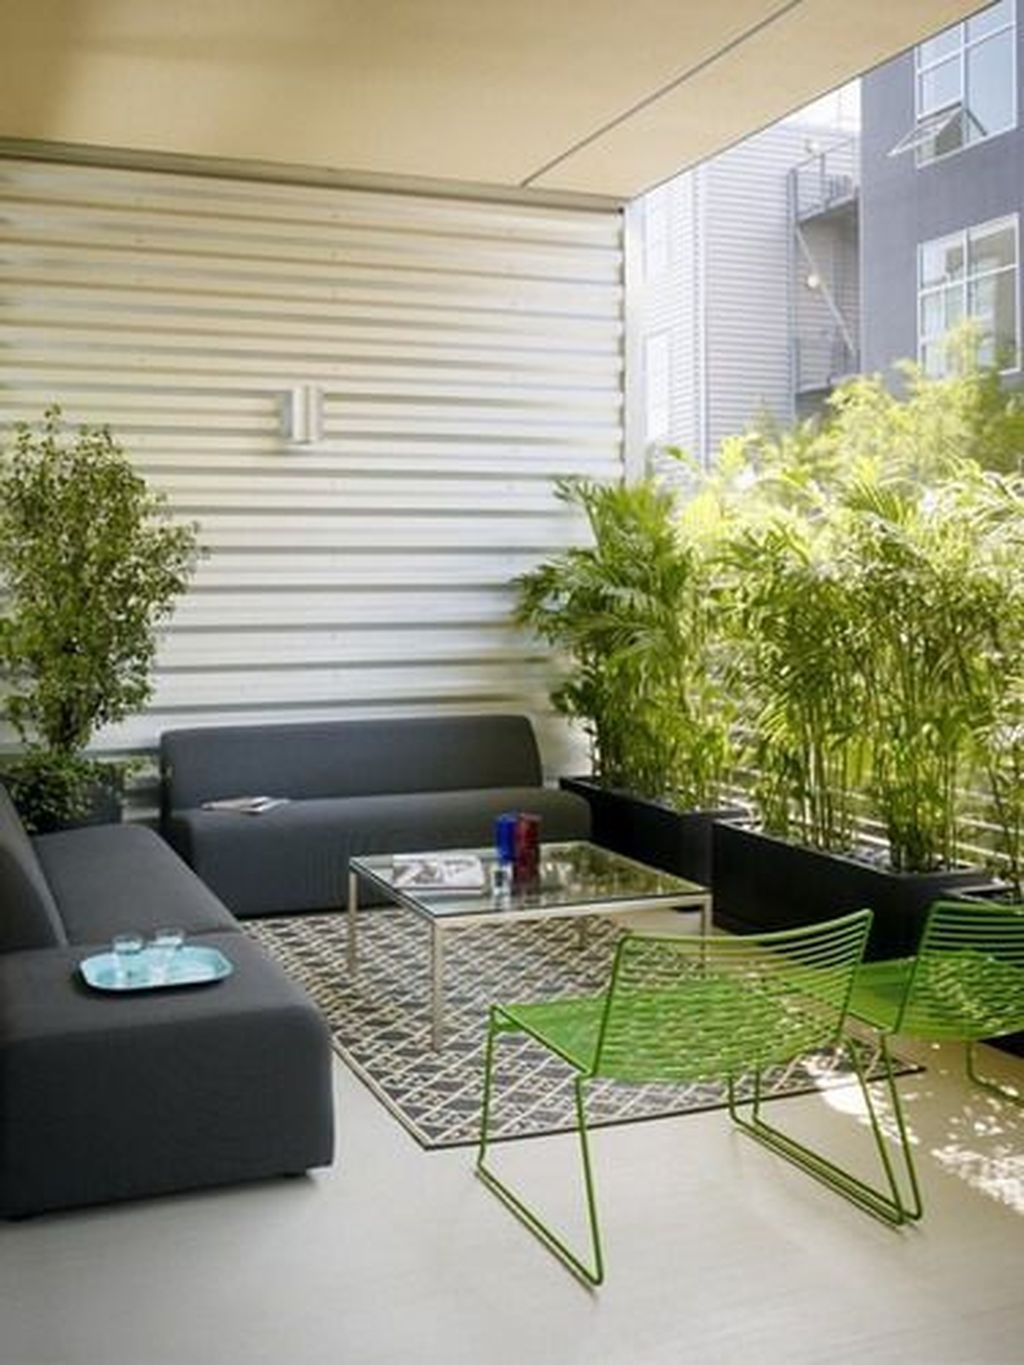 Brilliant Closed Balcony Design Ideas To Enjoy In All Weather Conditions16